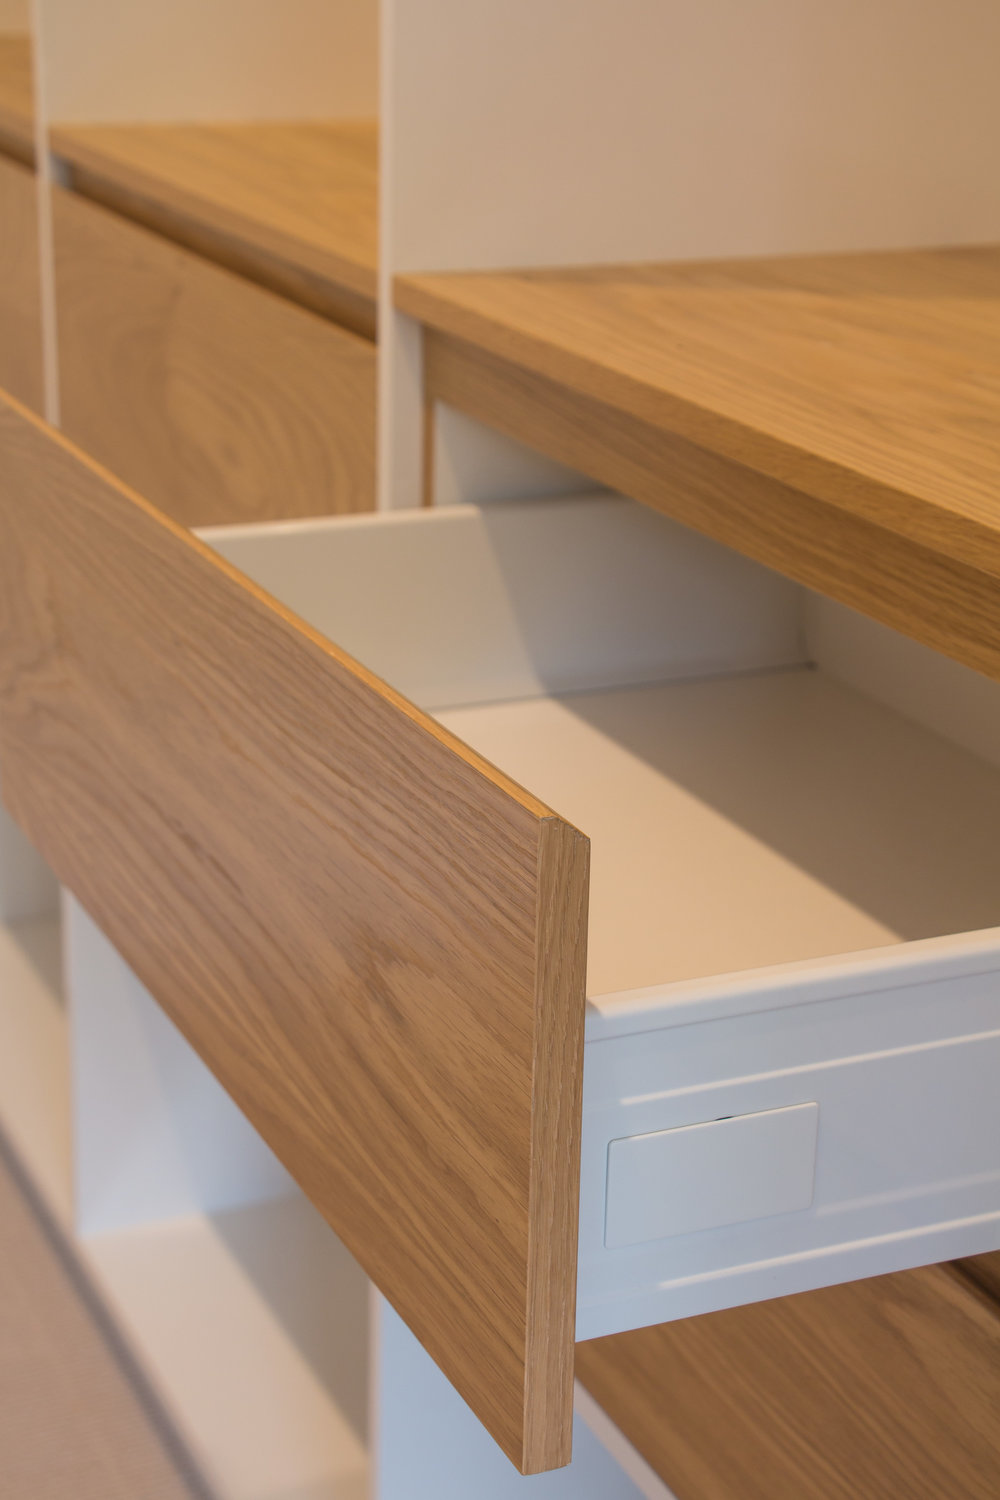 V Finger pull drawer fronts